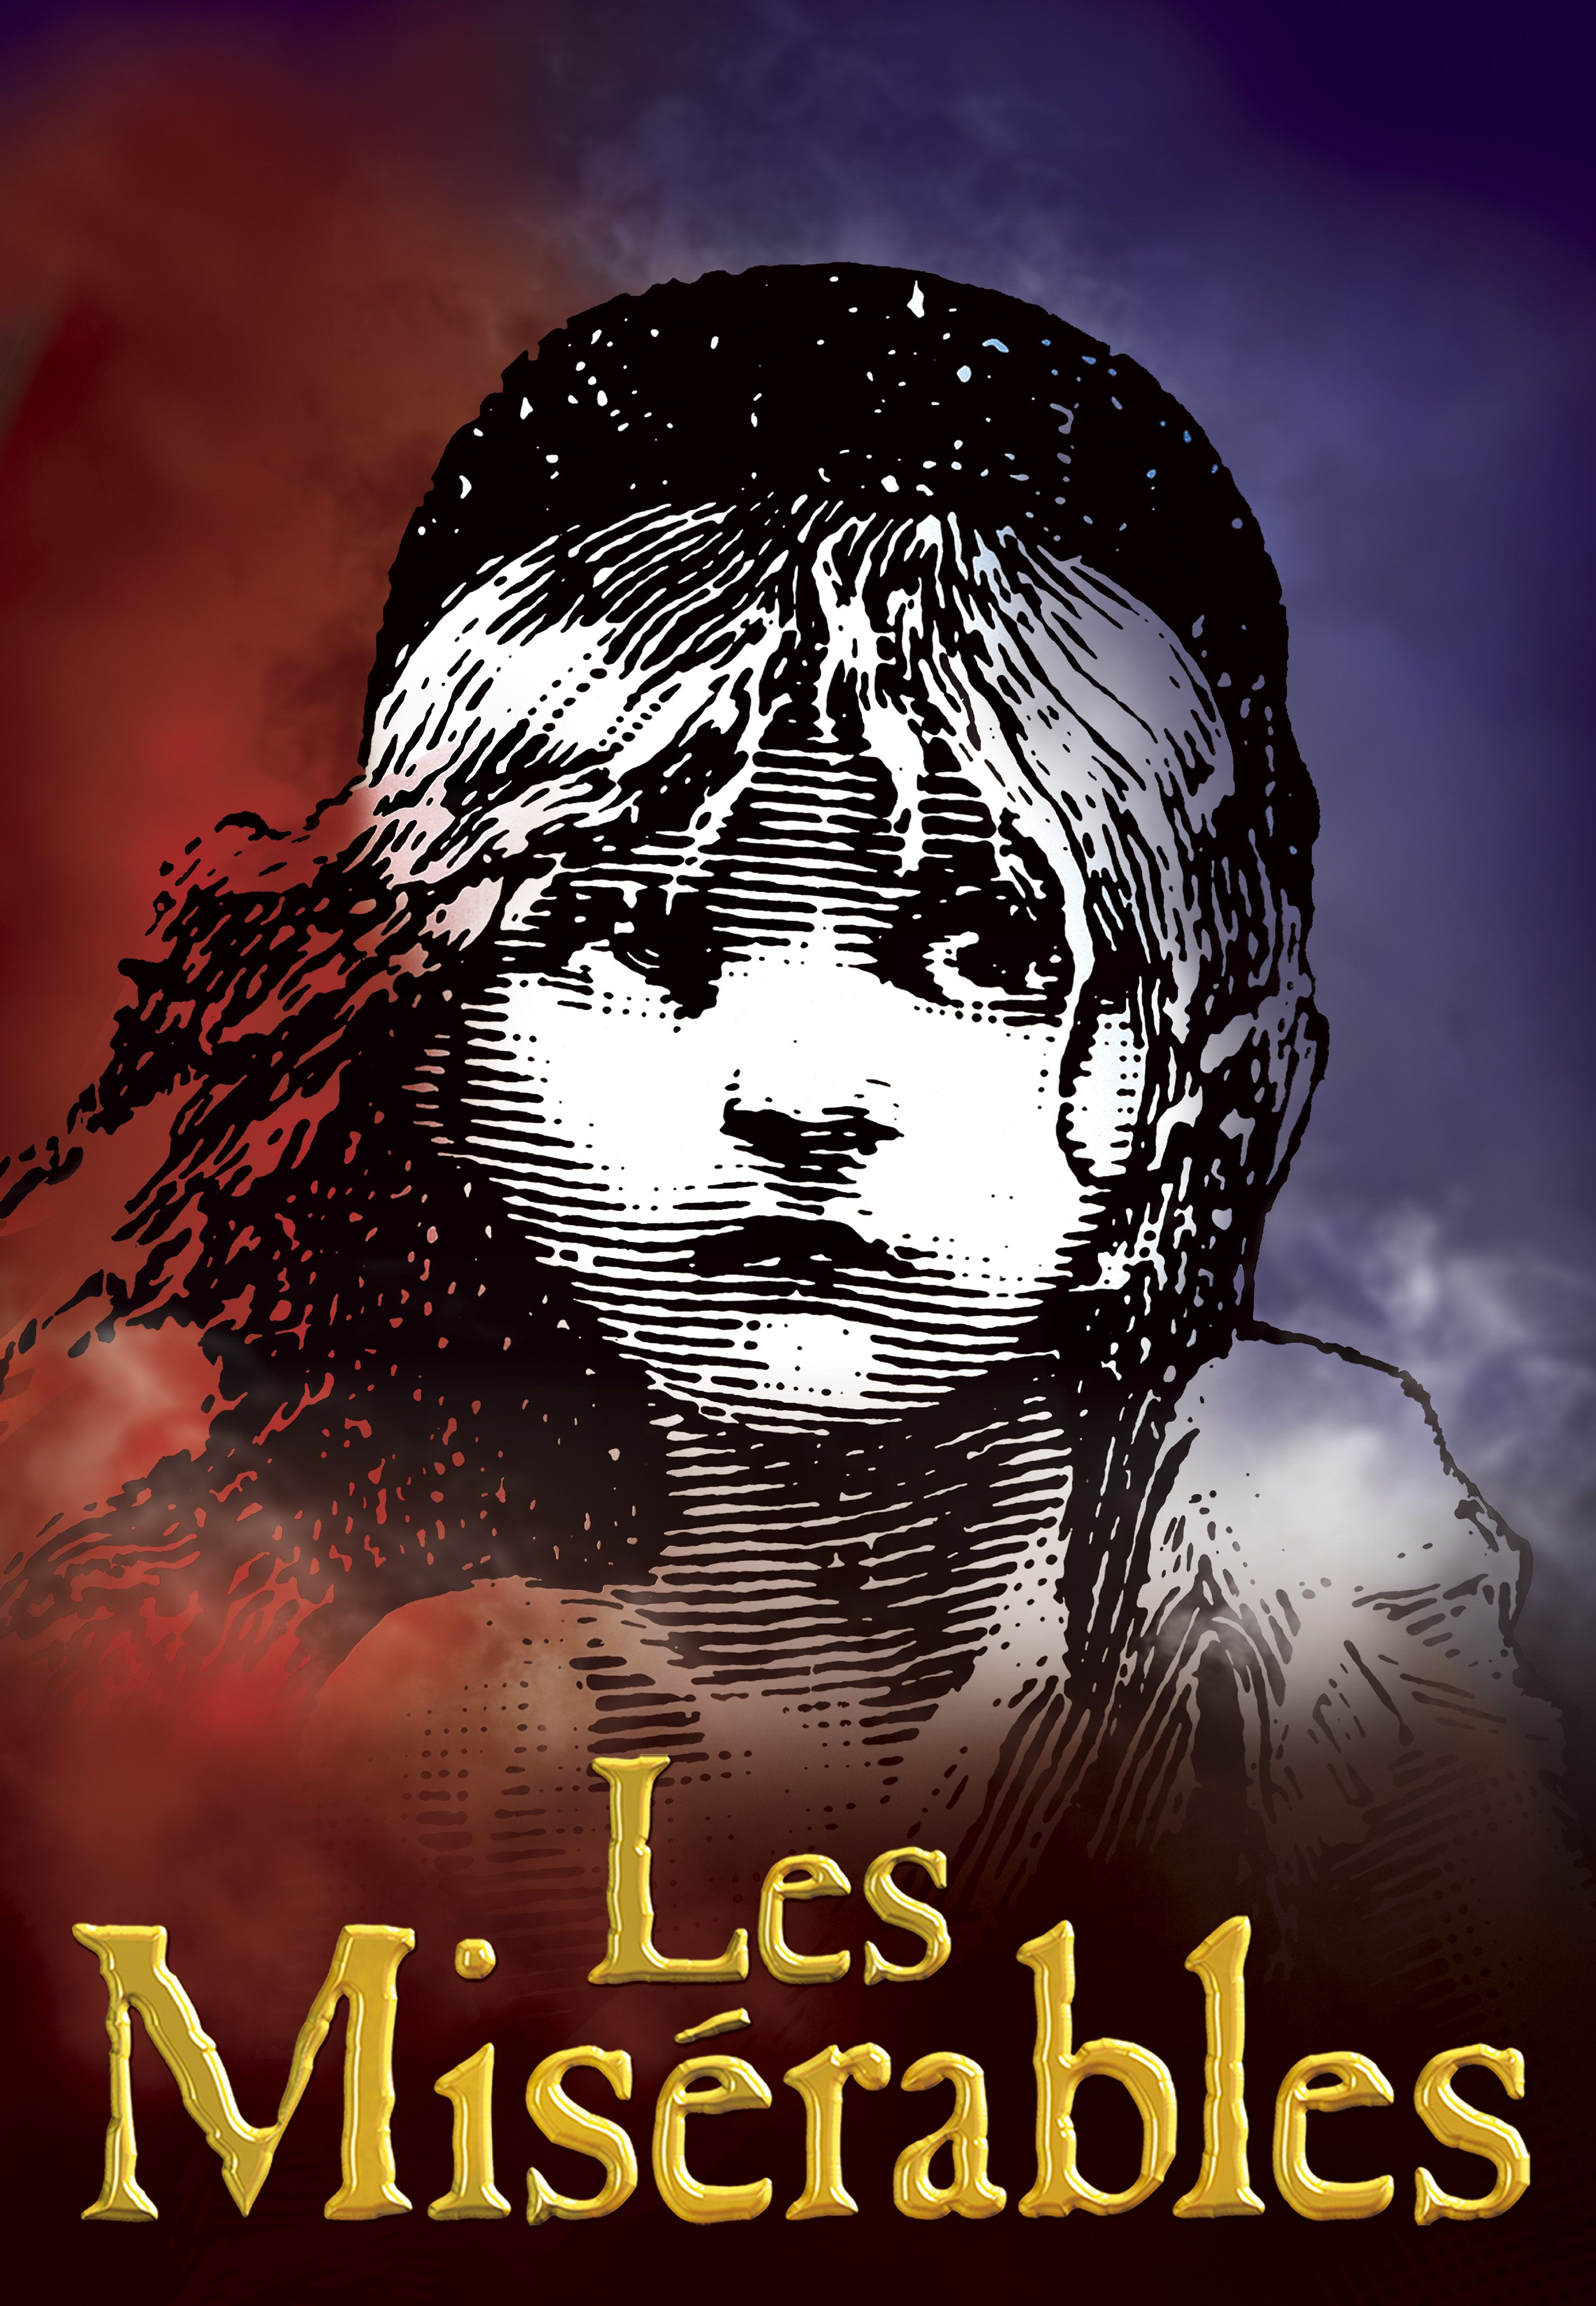 Mis Hogos Les Misérables 1862 Is A Novel By French Author Victor Hugo And